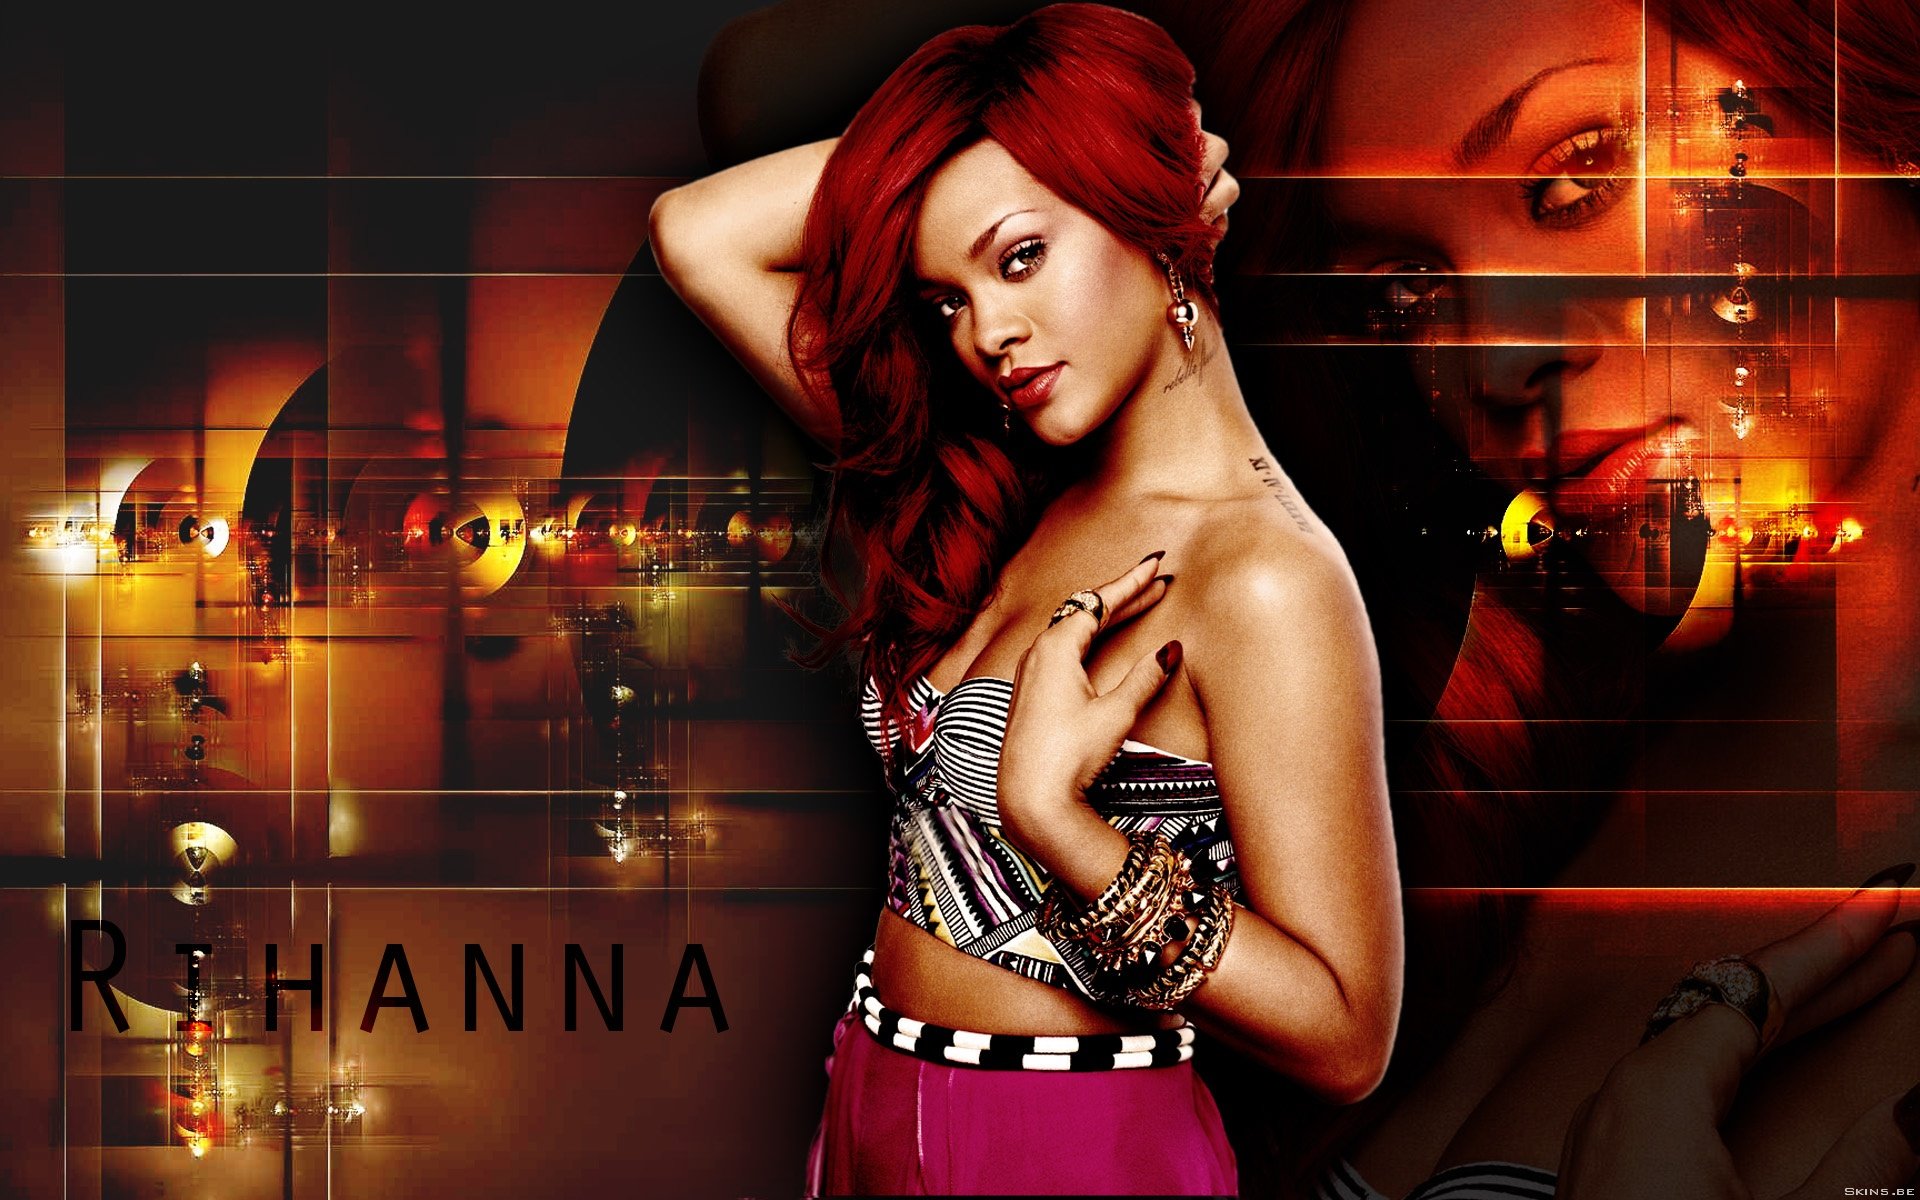 Rihanna 54 wallpaper